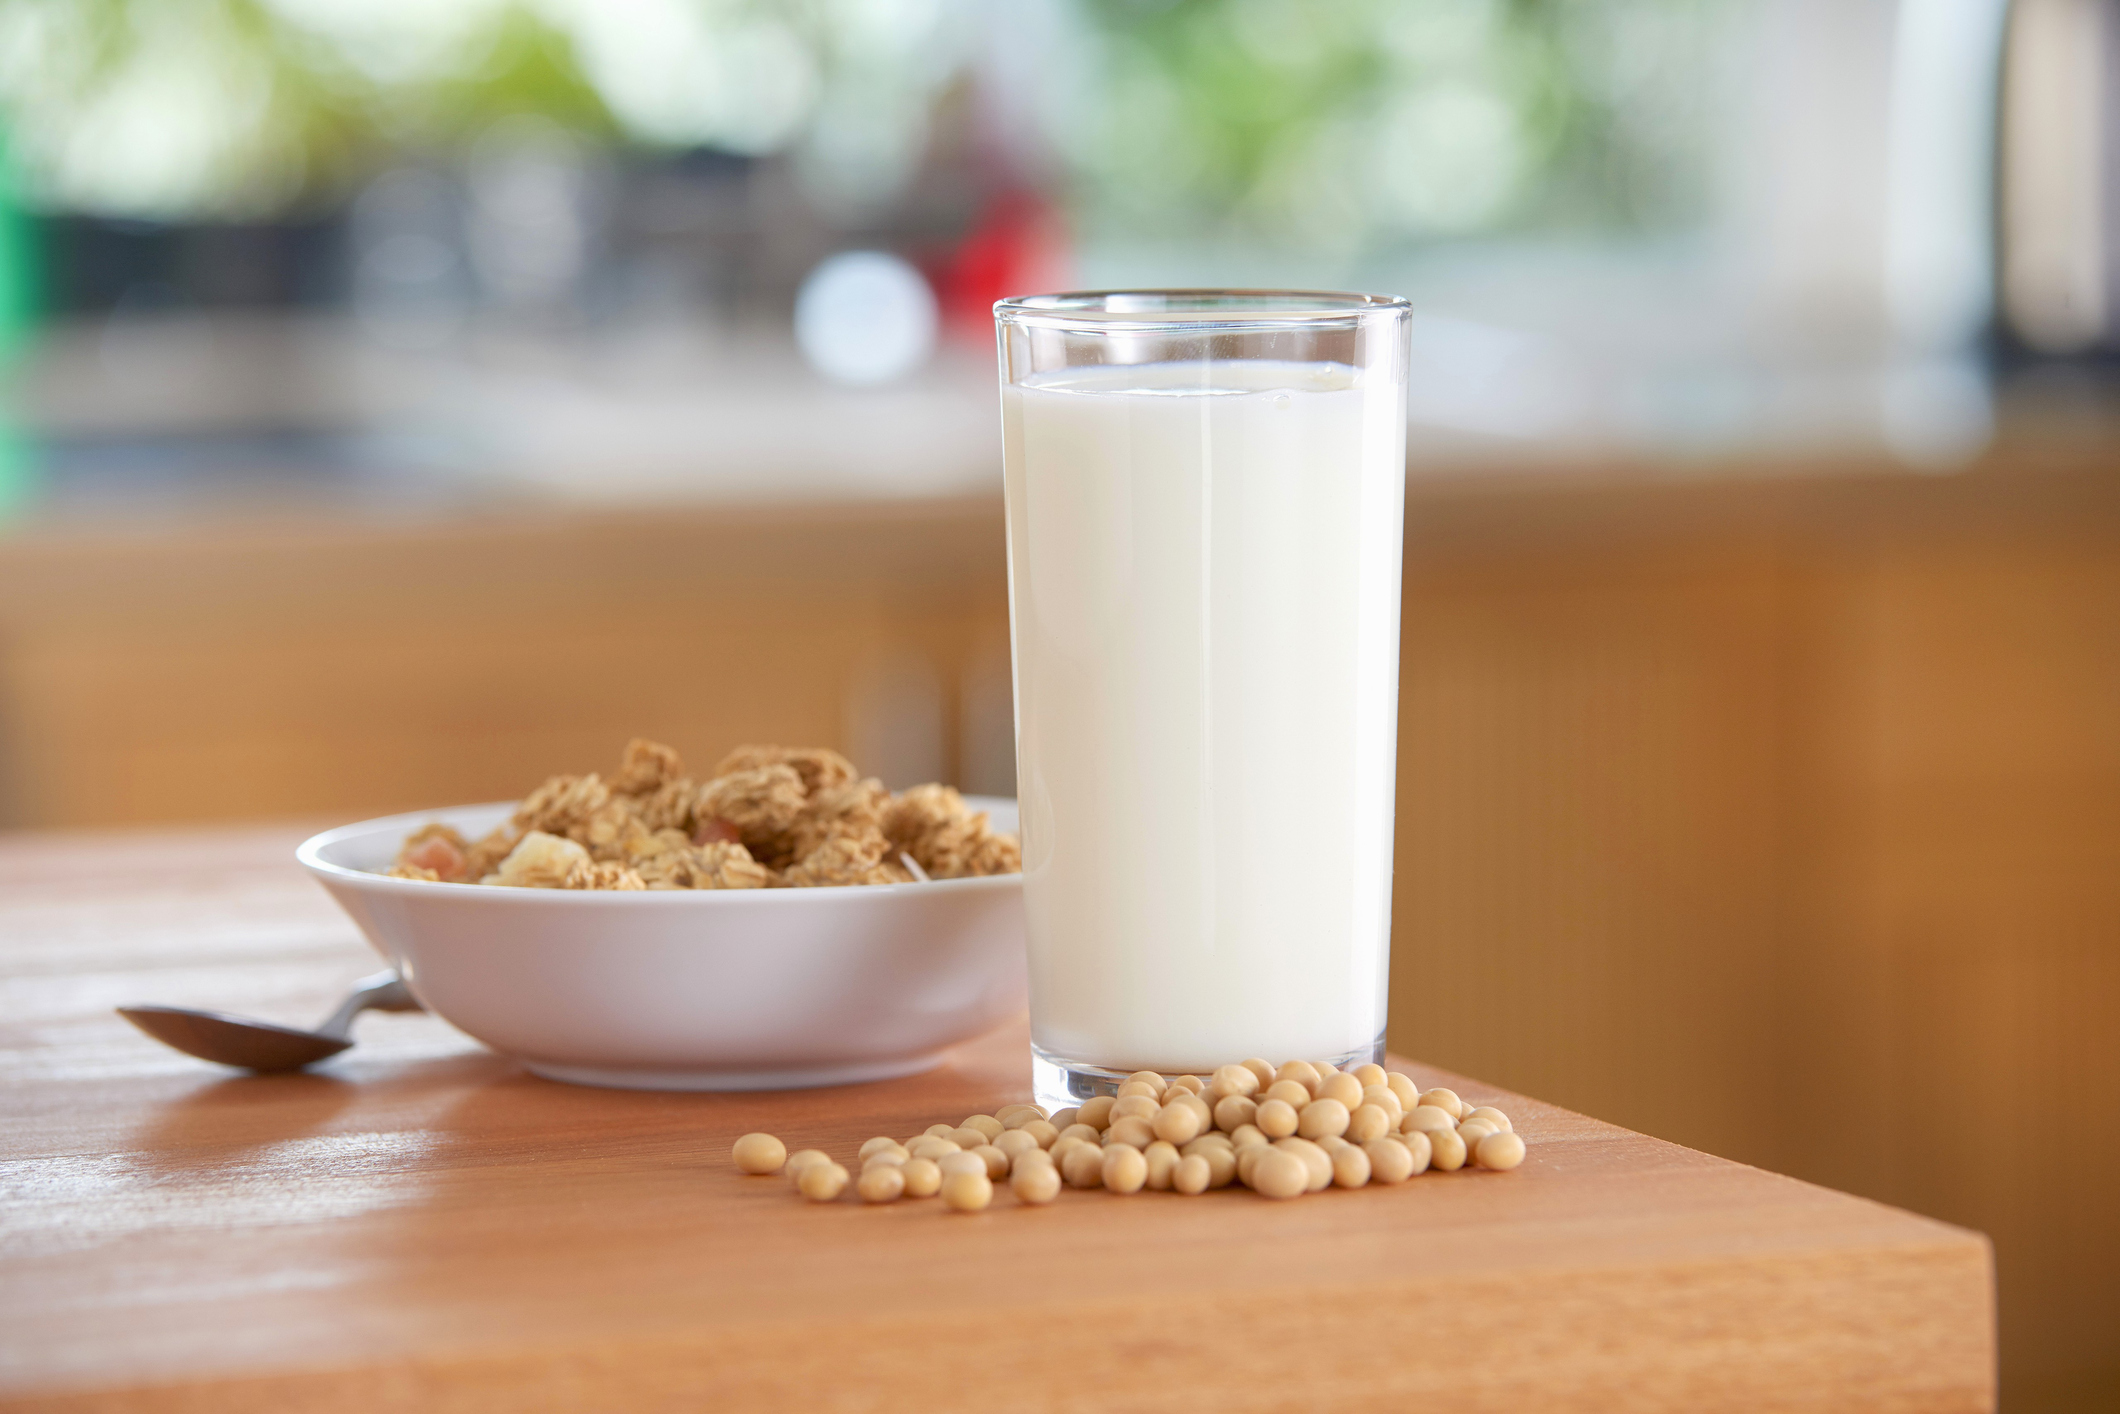 Soy is the most nutritious plant milk, according to new study